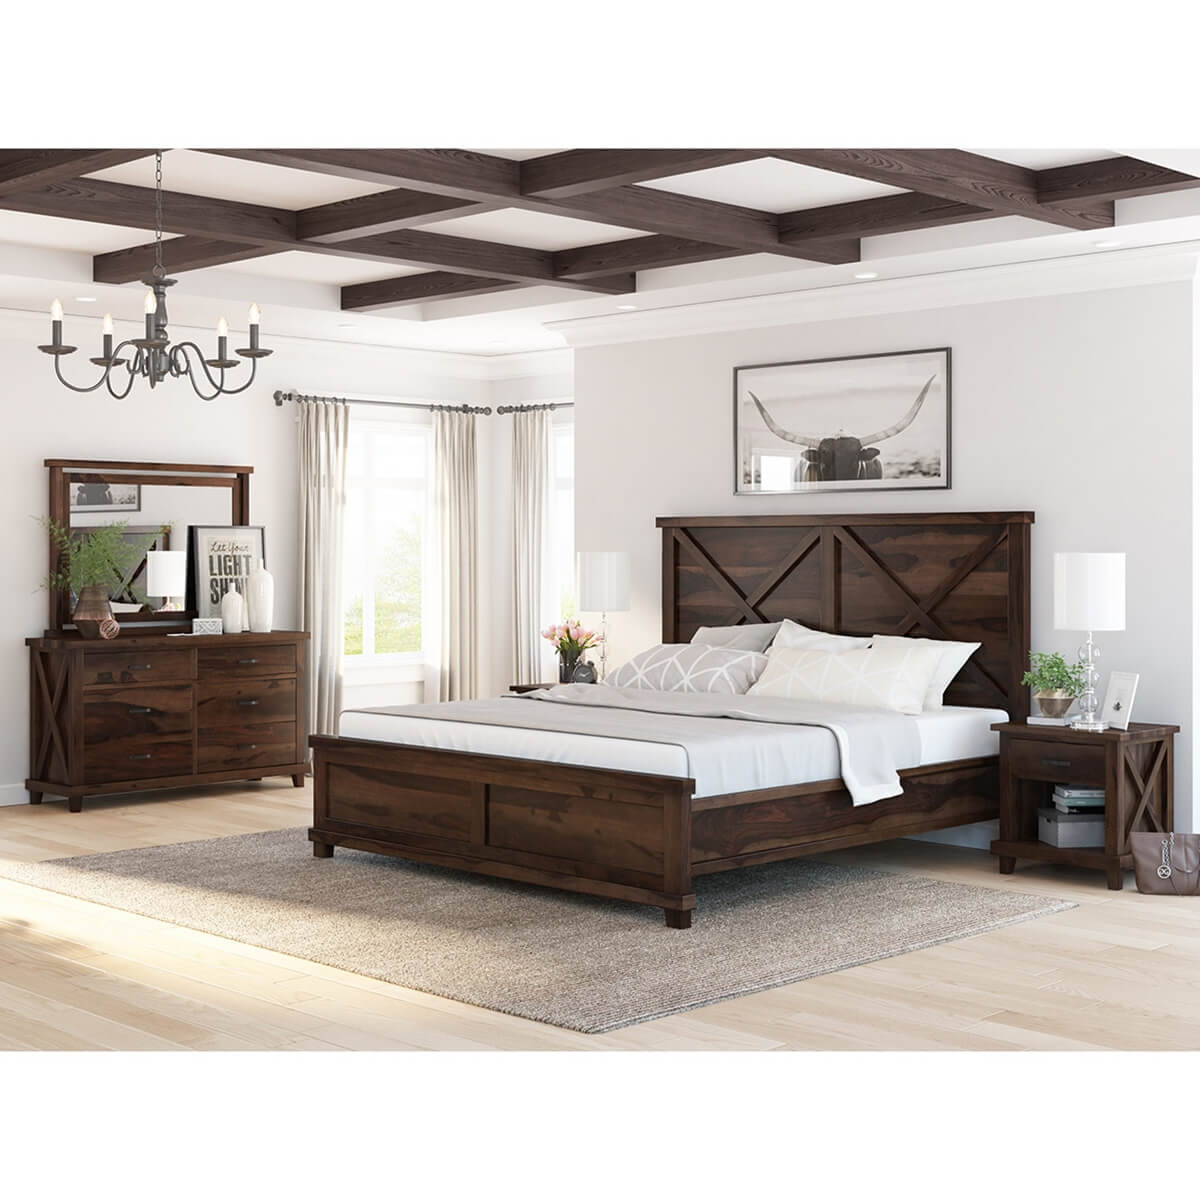 Antwerp Rustic Solid Wood 4 Piece Bedroom Set